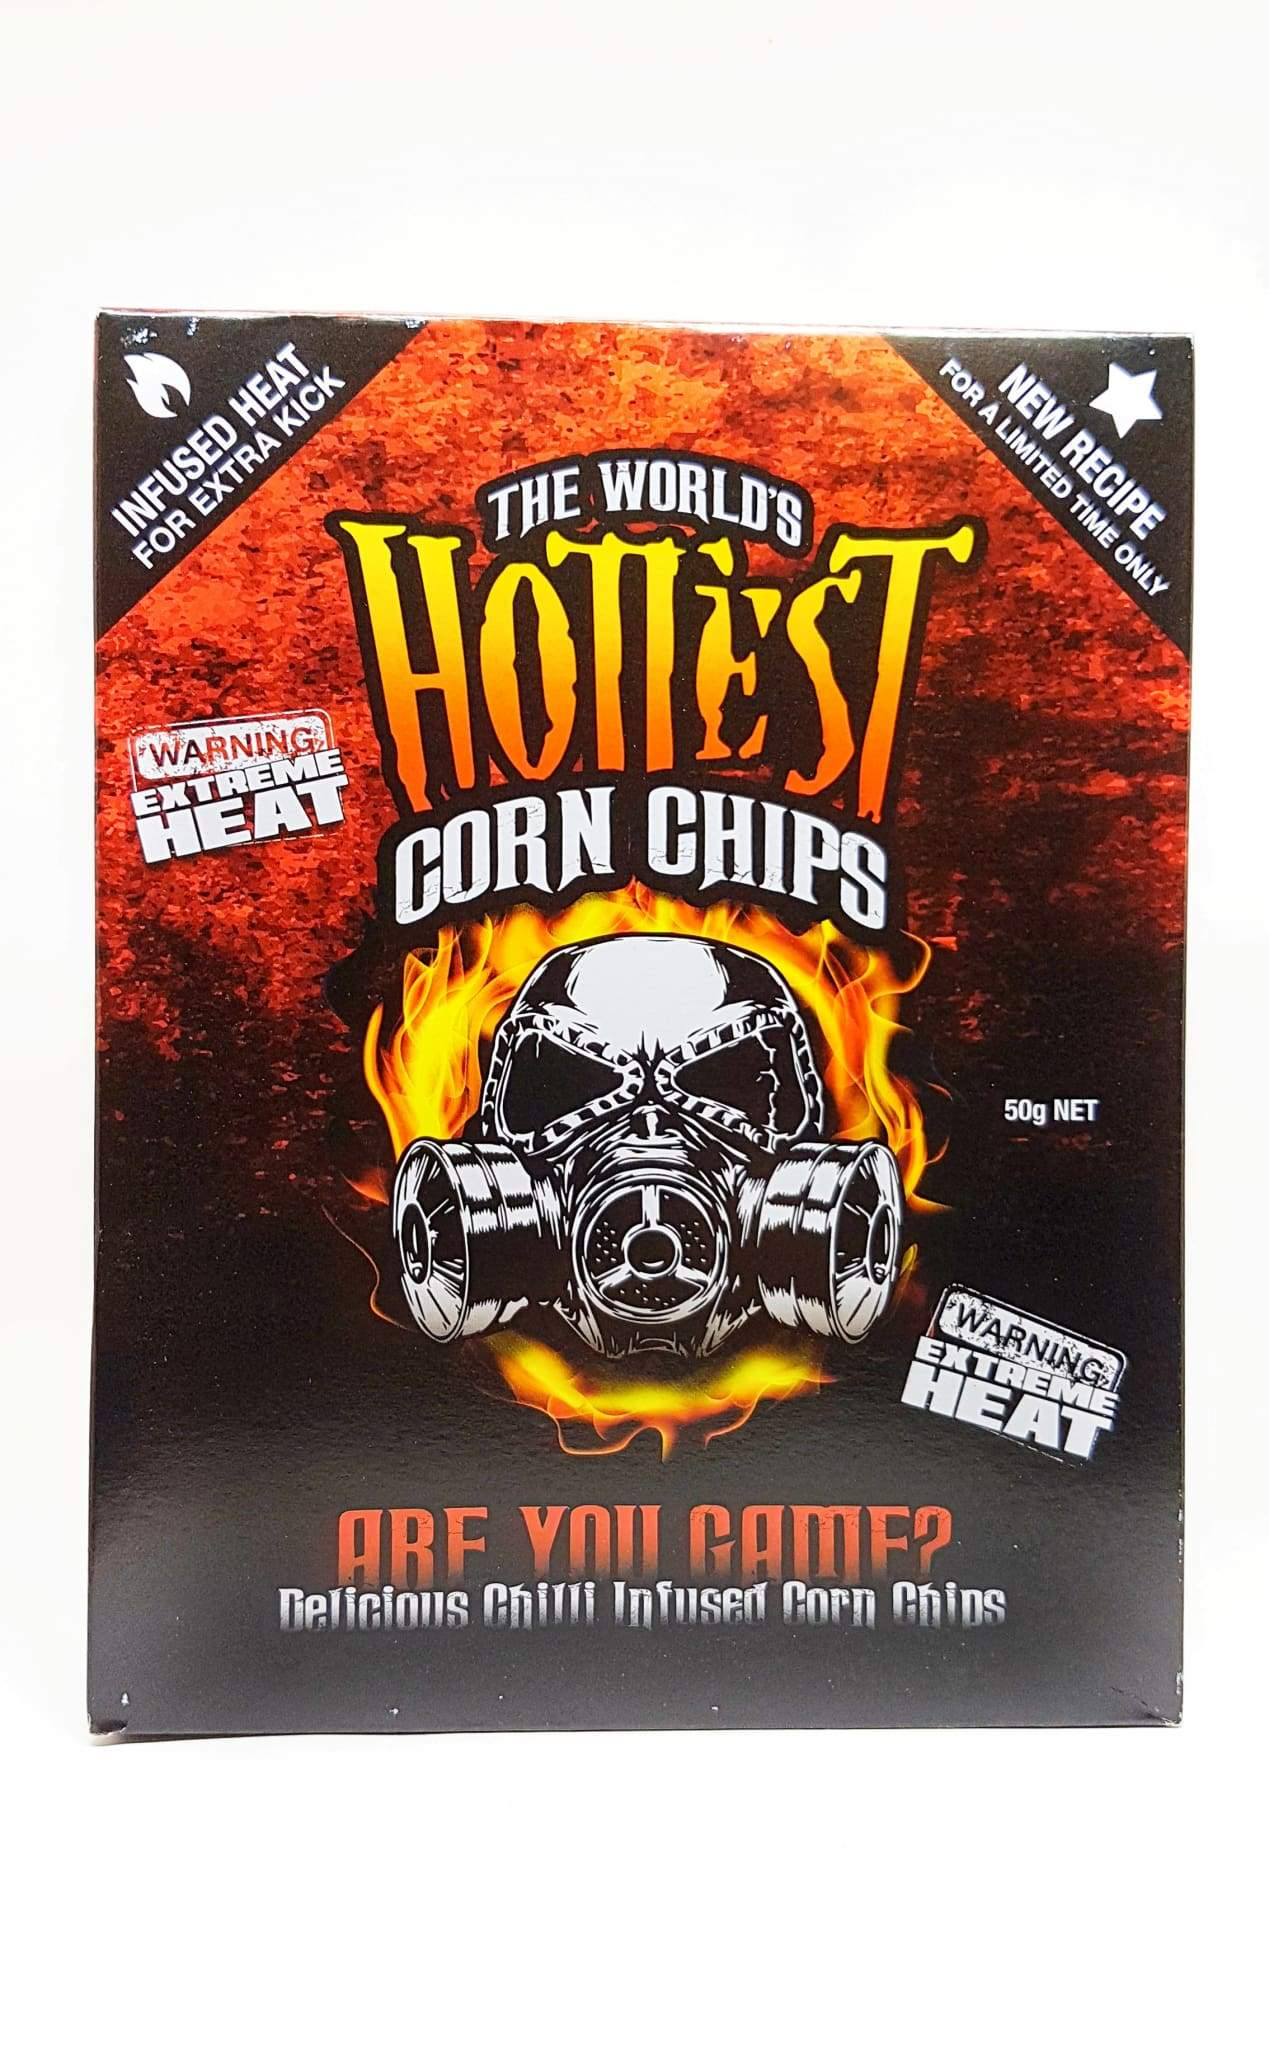 The World's Hottest Corn Chips from Chilli Seed Bank.